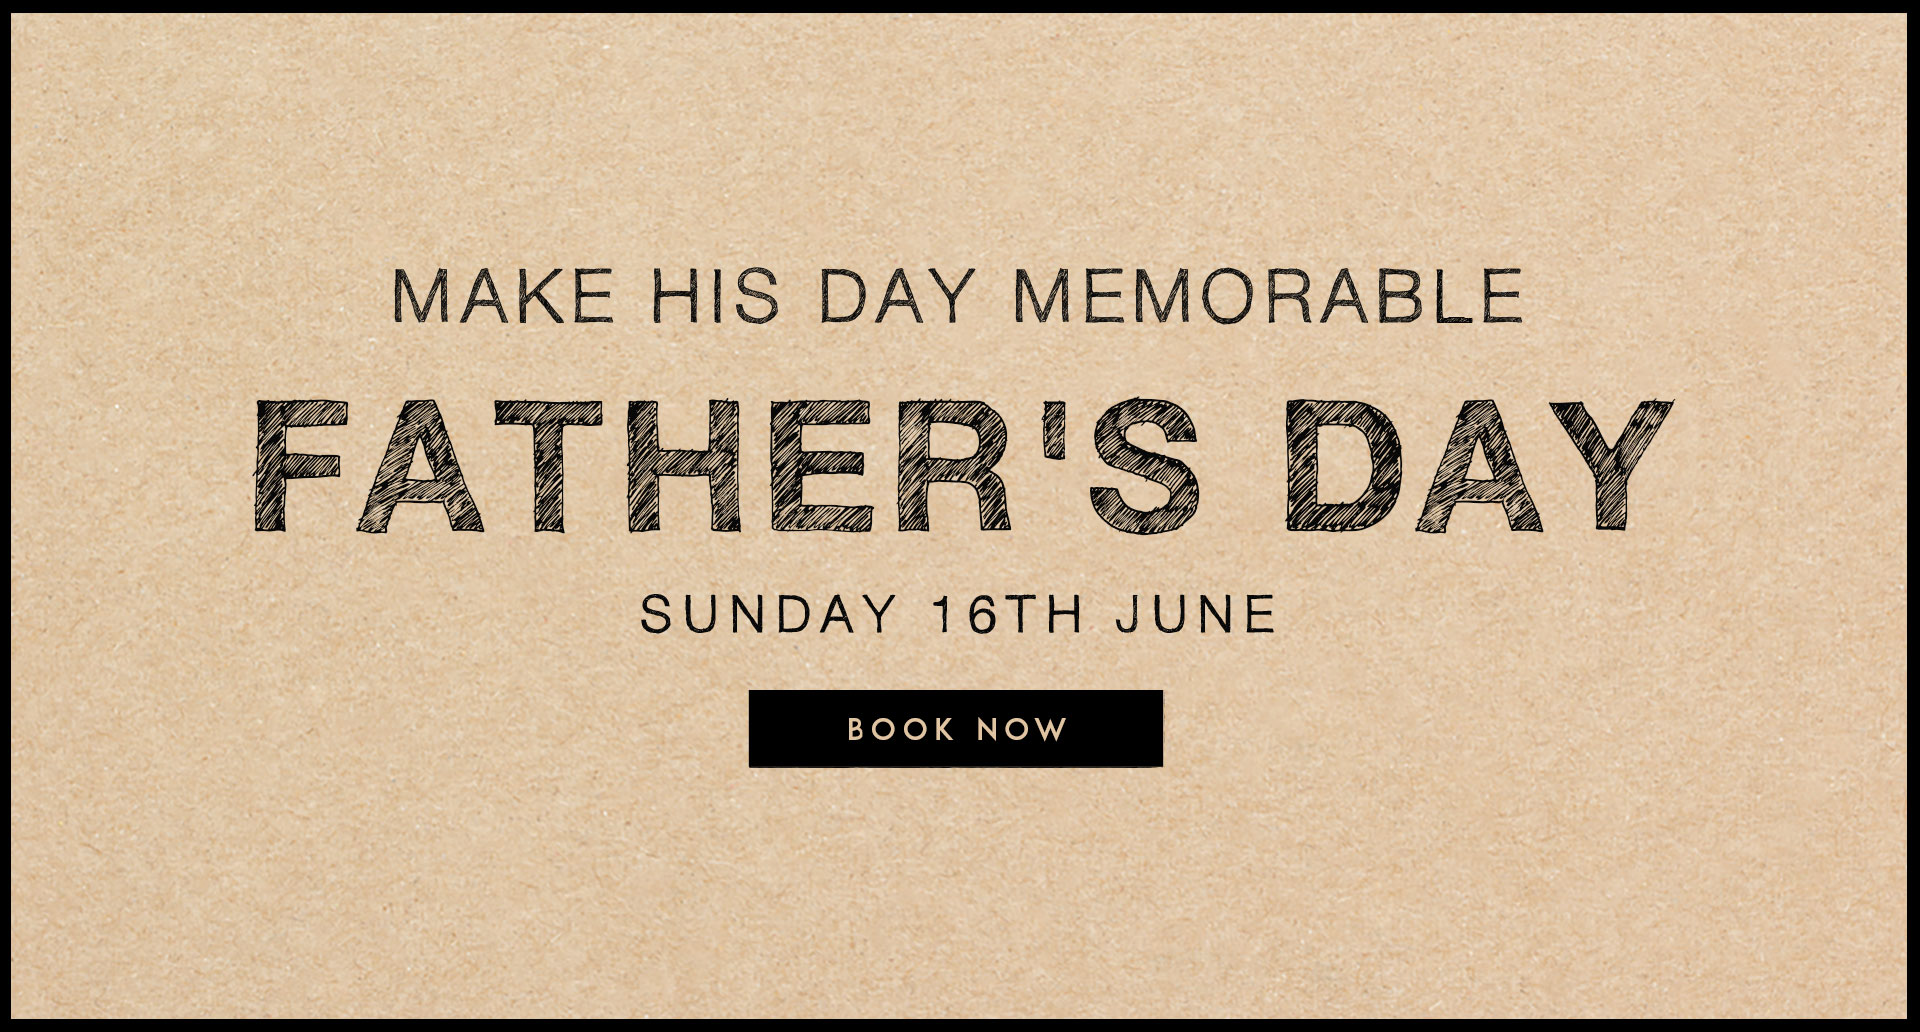 Fathers Day at The Hope & Bear